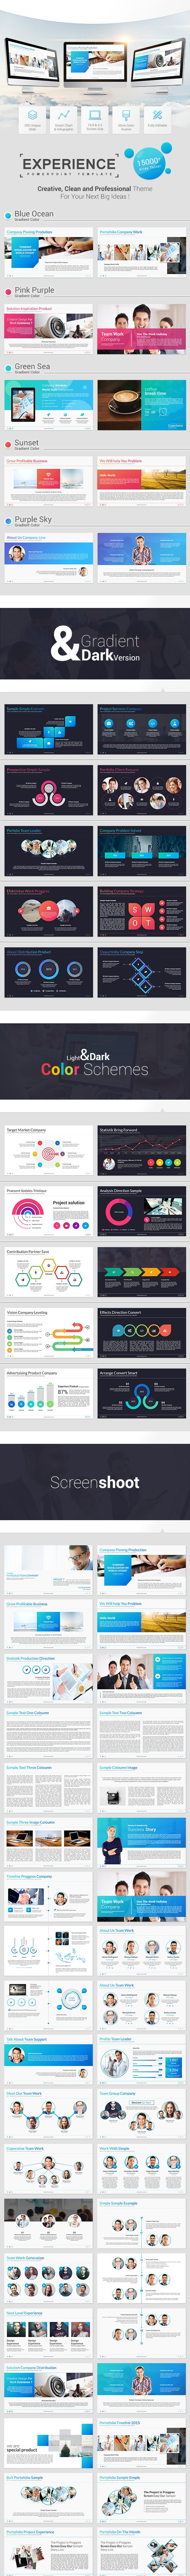 Experience Powerpoint Template - Business PowerPoint Templates